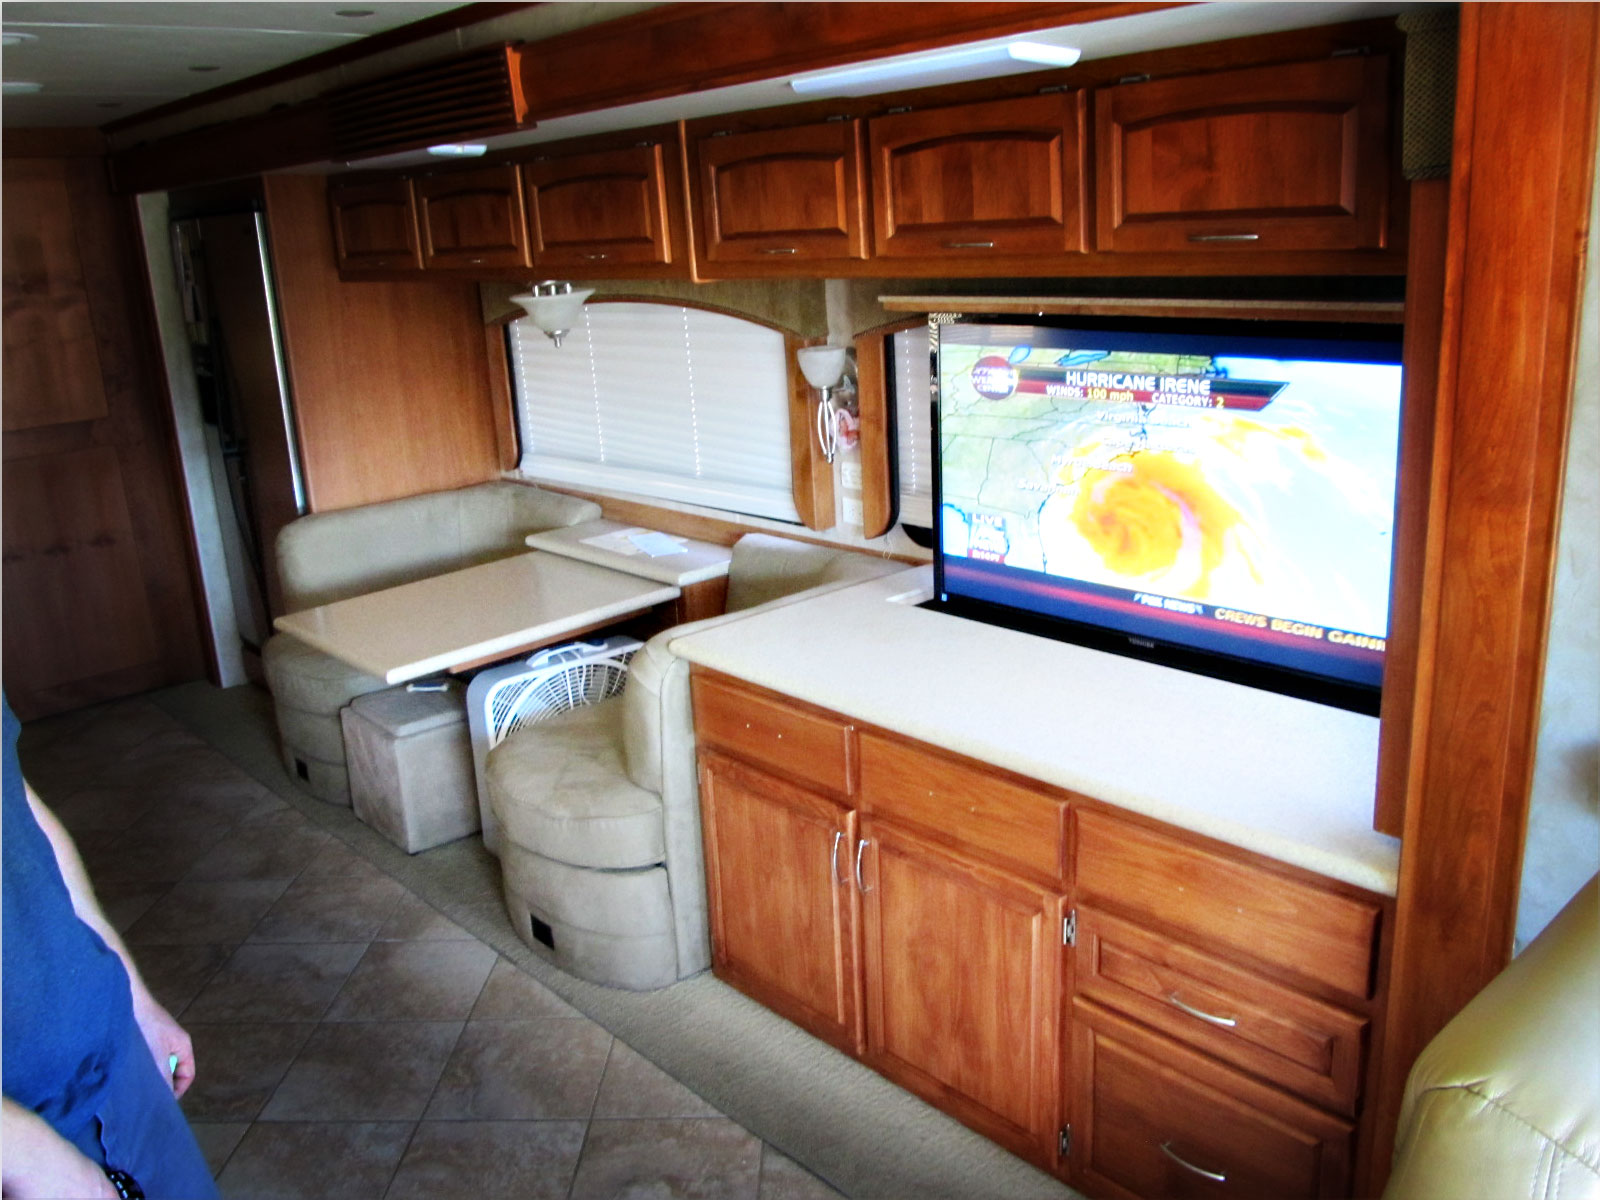 rv cabinets and storage systems rv kitchen cabinets Custom Overhead Storage